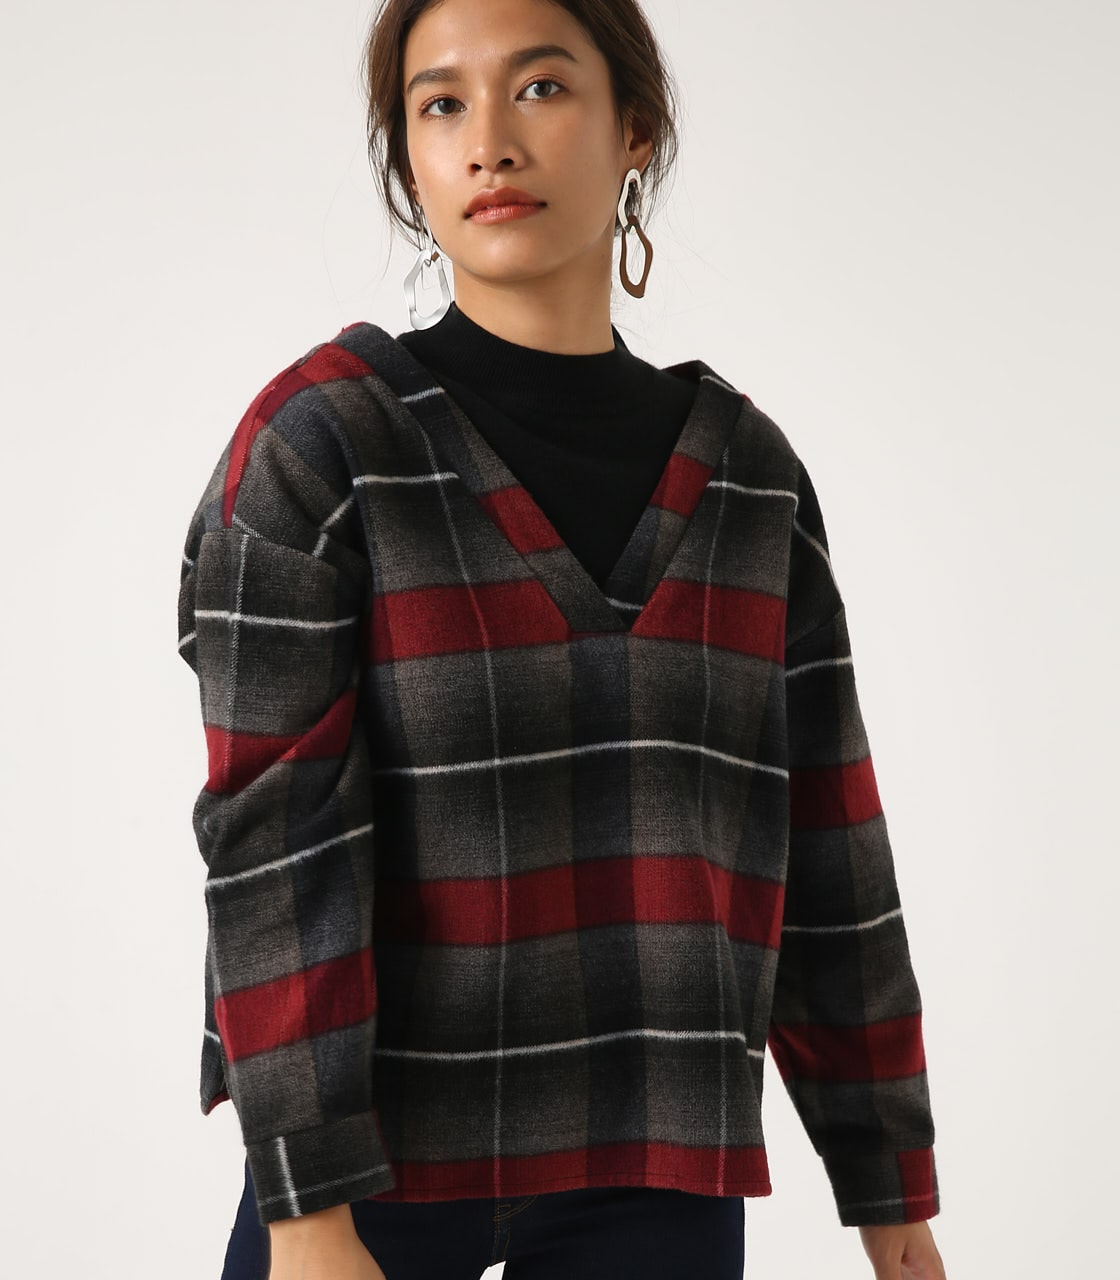 【AZUL BY MOUSSY】シャギーチェック2WAYプルオーバー 詳細画像 柄RED 2